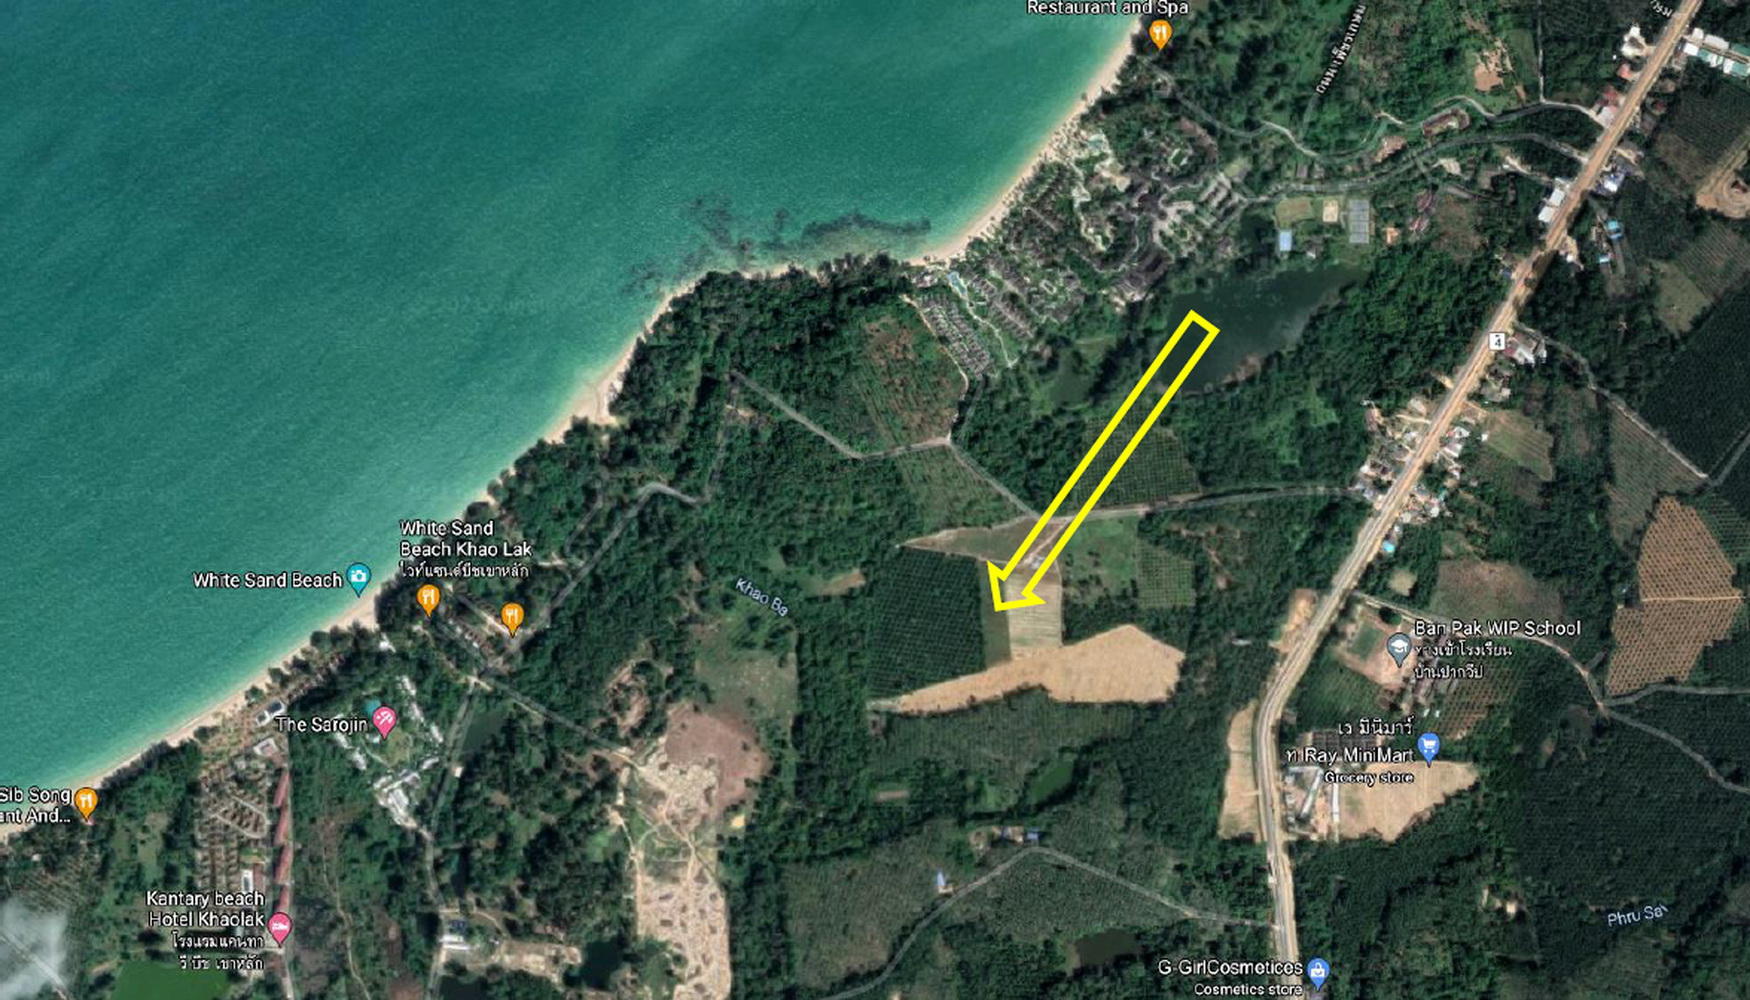 Land for sale in Khaolak 5 minute-walk to the beaches